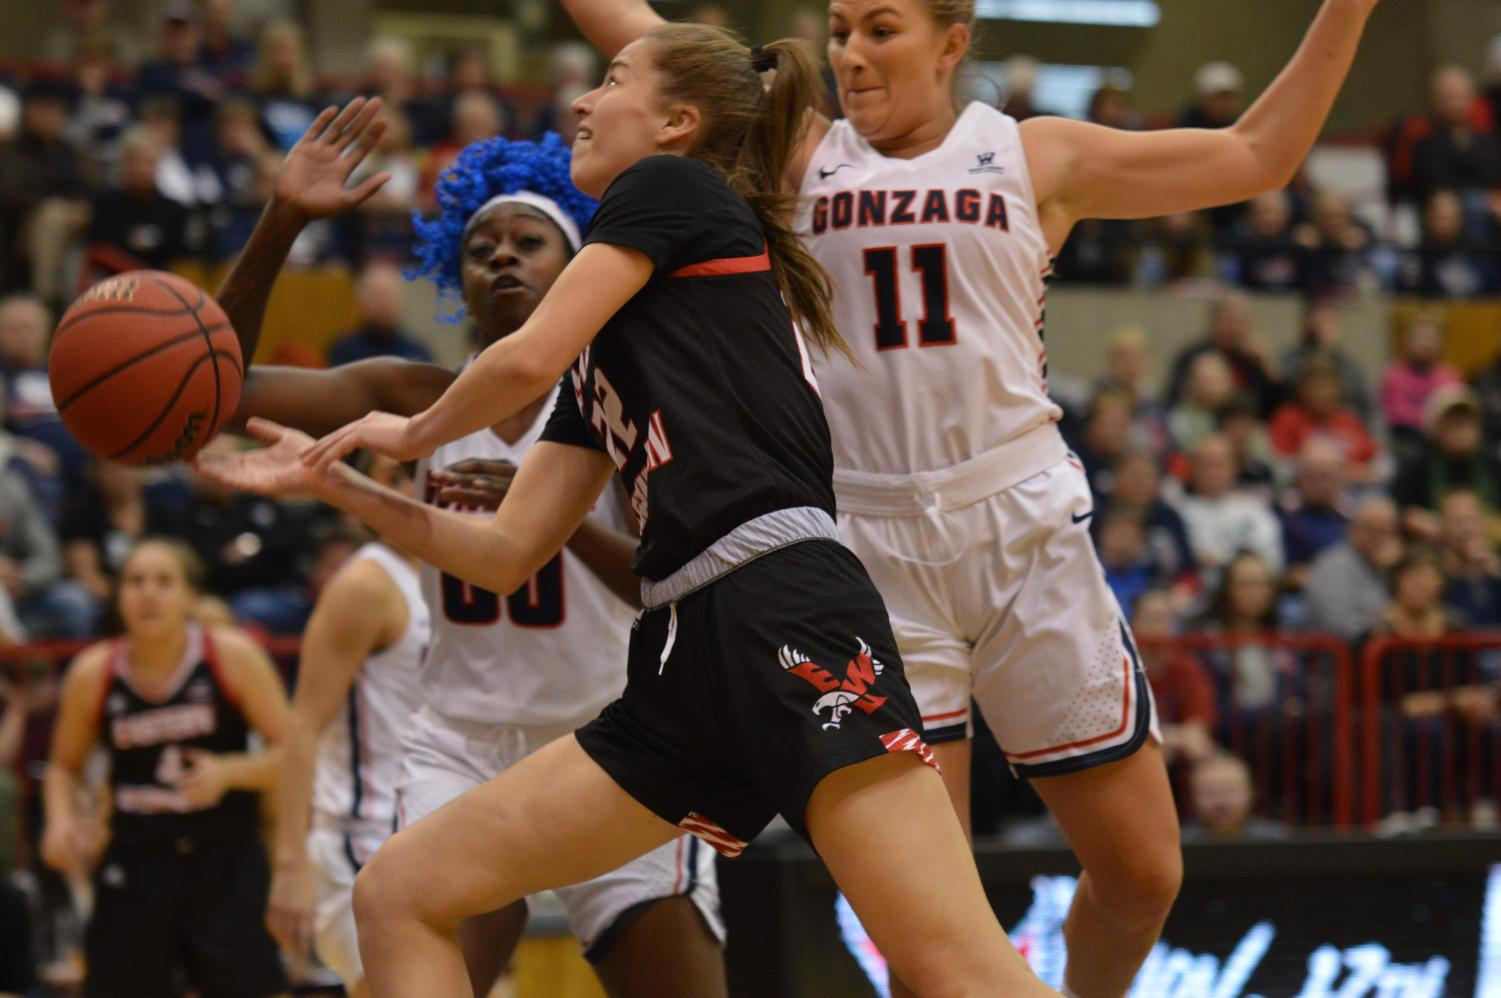 Sophomore guard Brittany Klaman goes in for a layup against Gonzaga on Sunday. Klaman finished the game with four points.